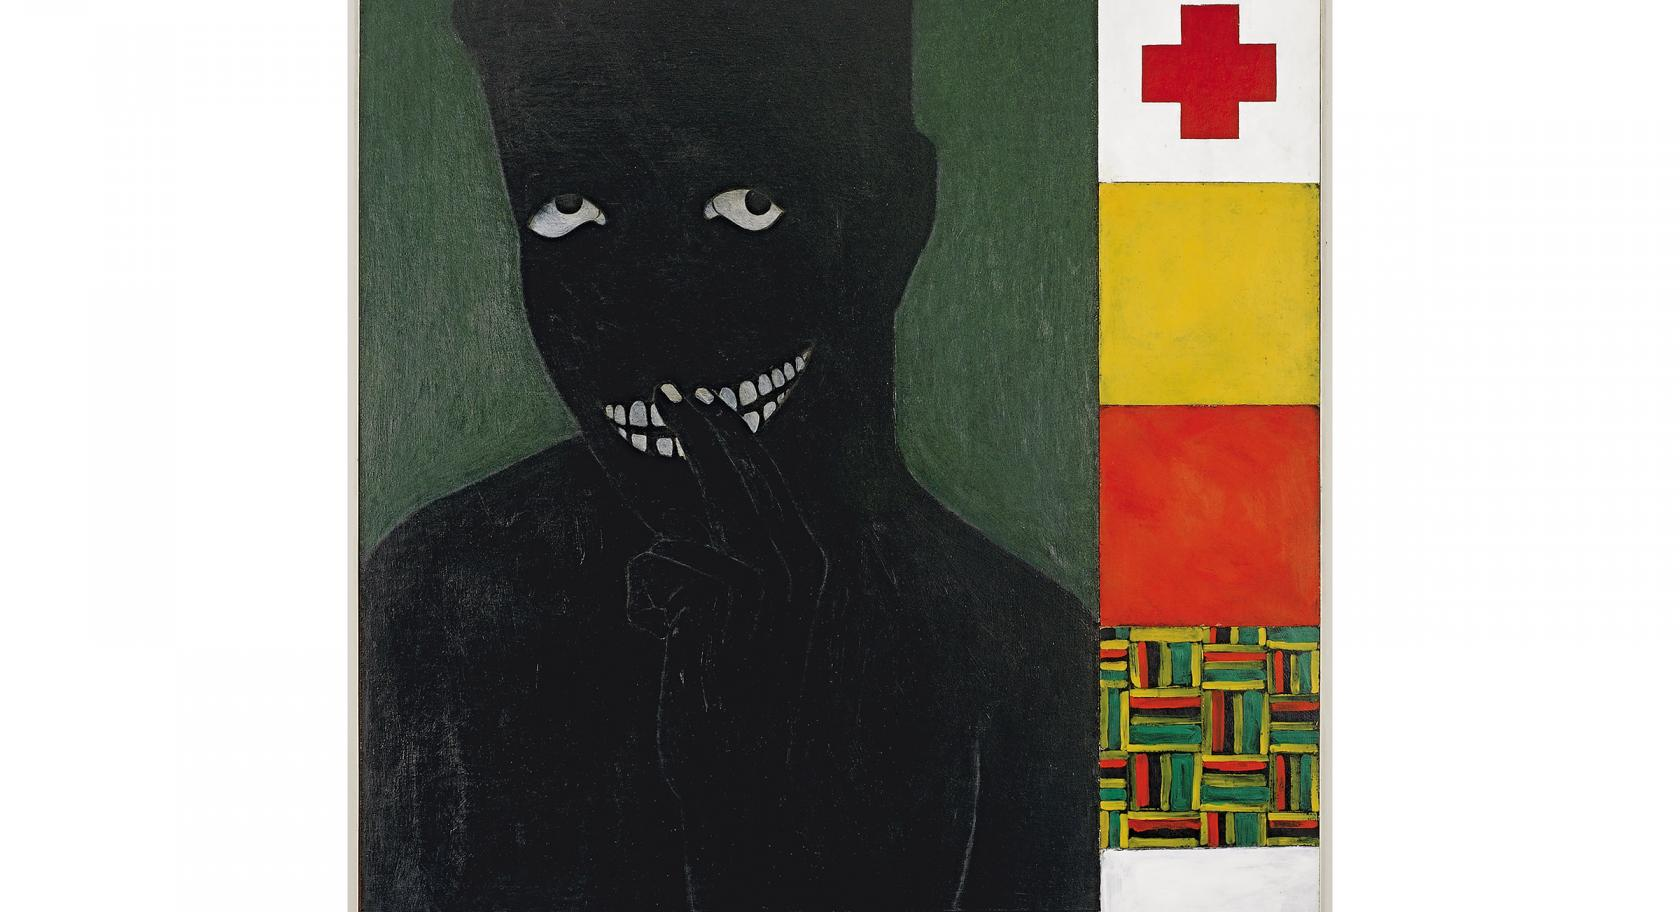 Kerry James Marshall, Silence is Golden, 1986